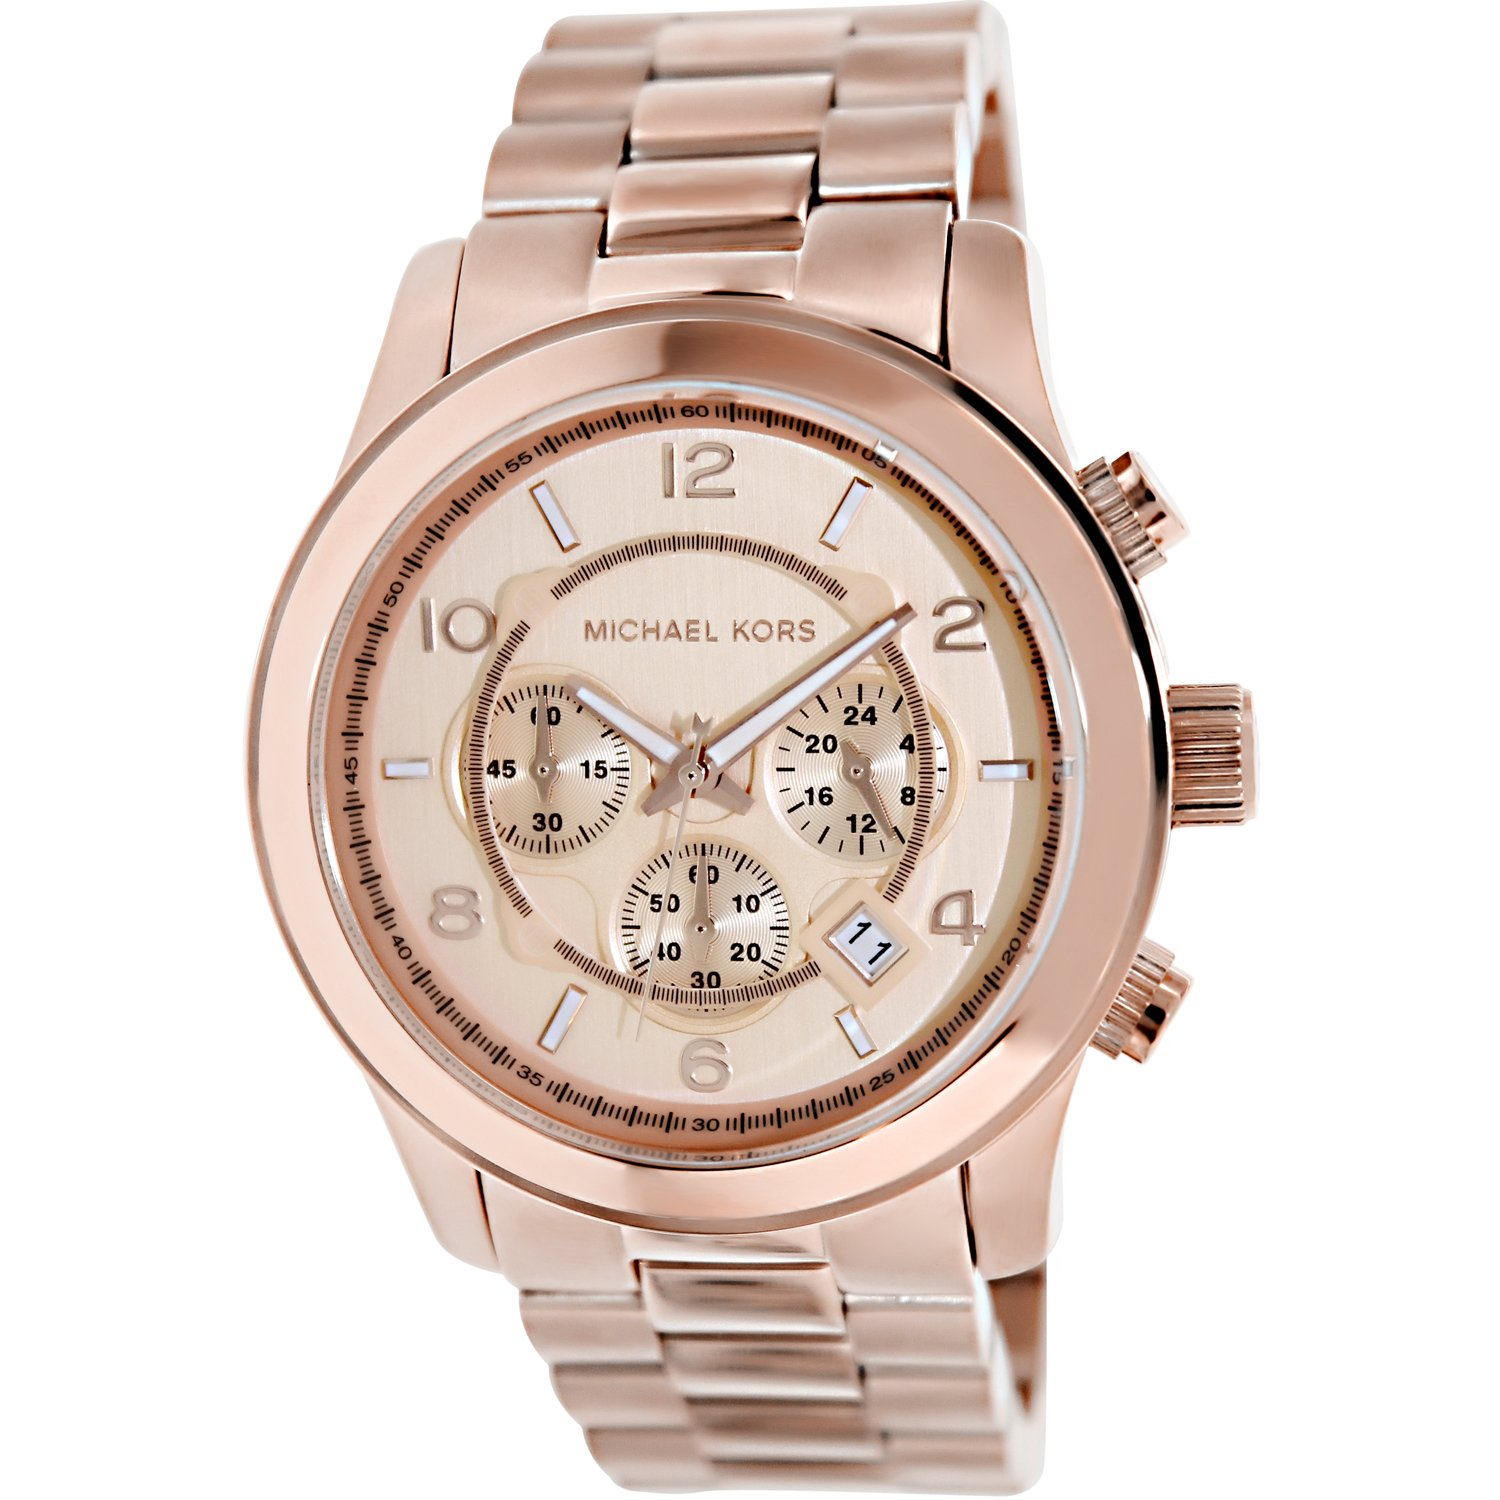 Michael Kors Men's Runway MK8096 Rose-Gold Stainless-Steel Quartz Dress Watch